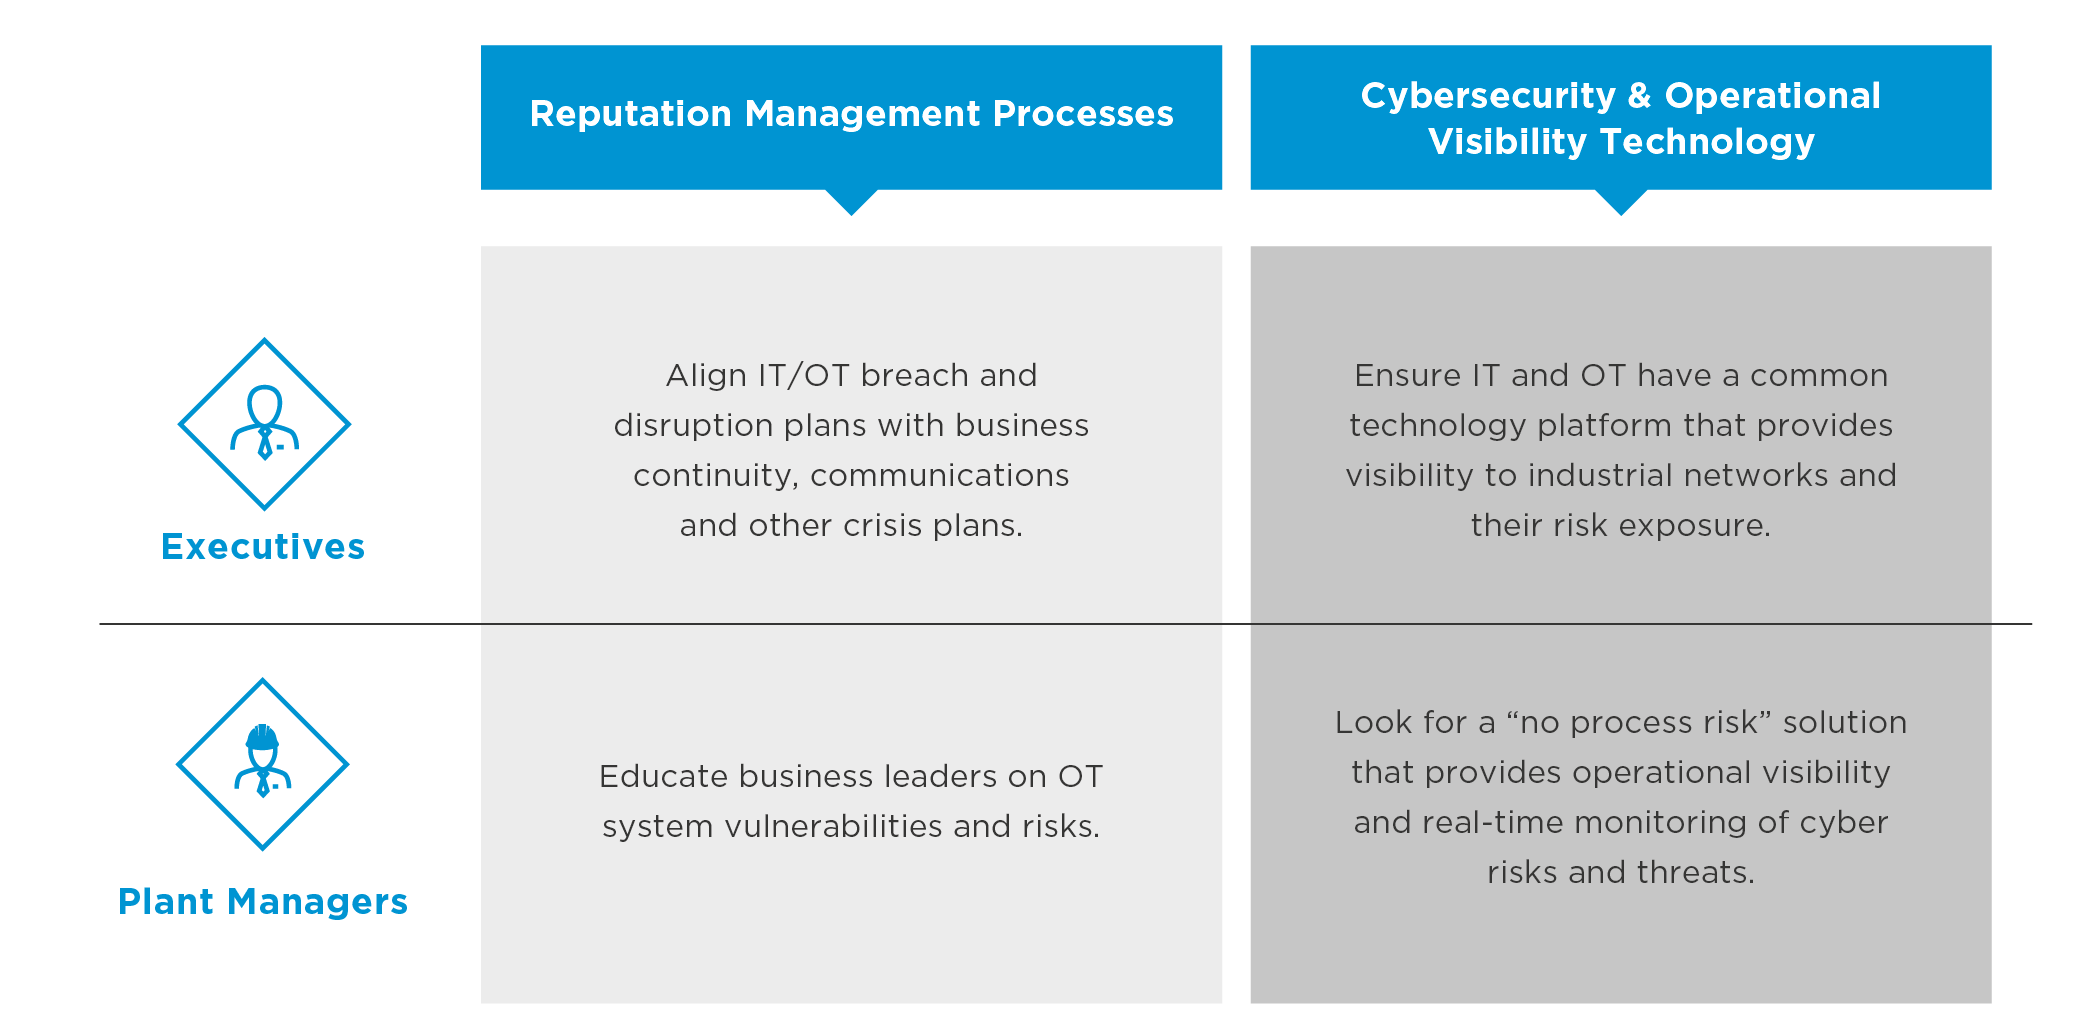 Managing-Reputational-and-OT-Risk-in-an-Era-of-Escalating-Cyber-Threats